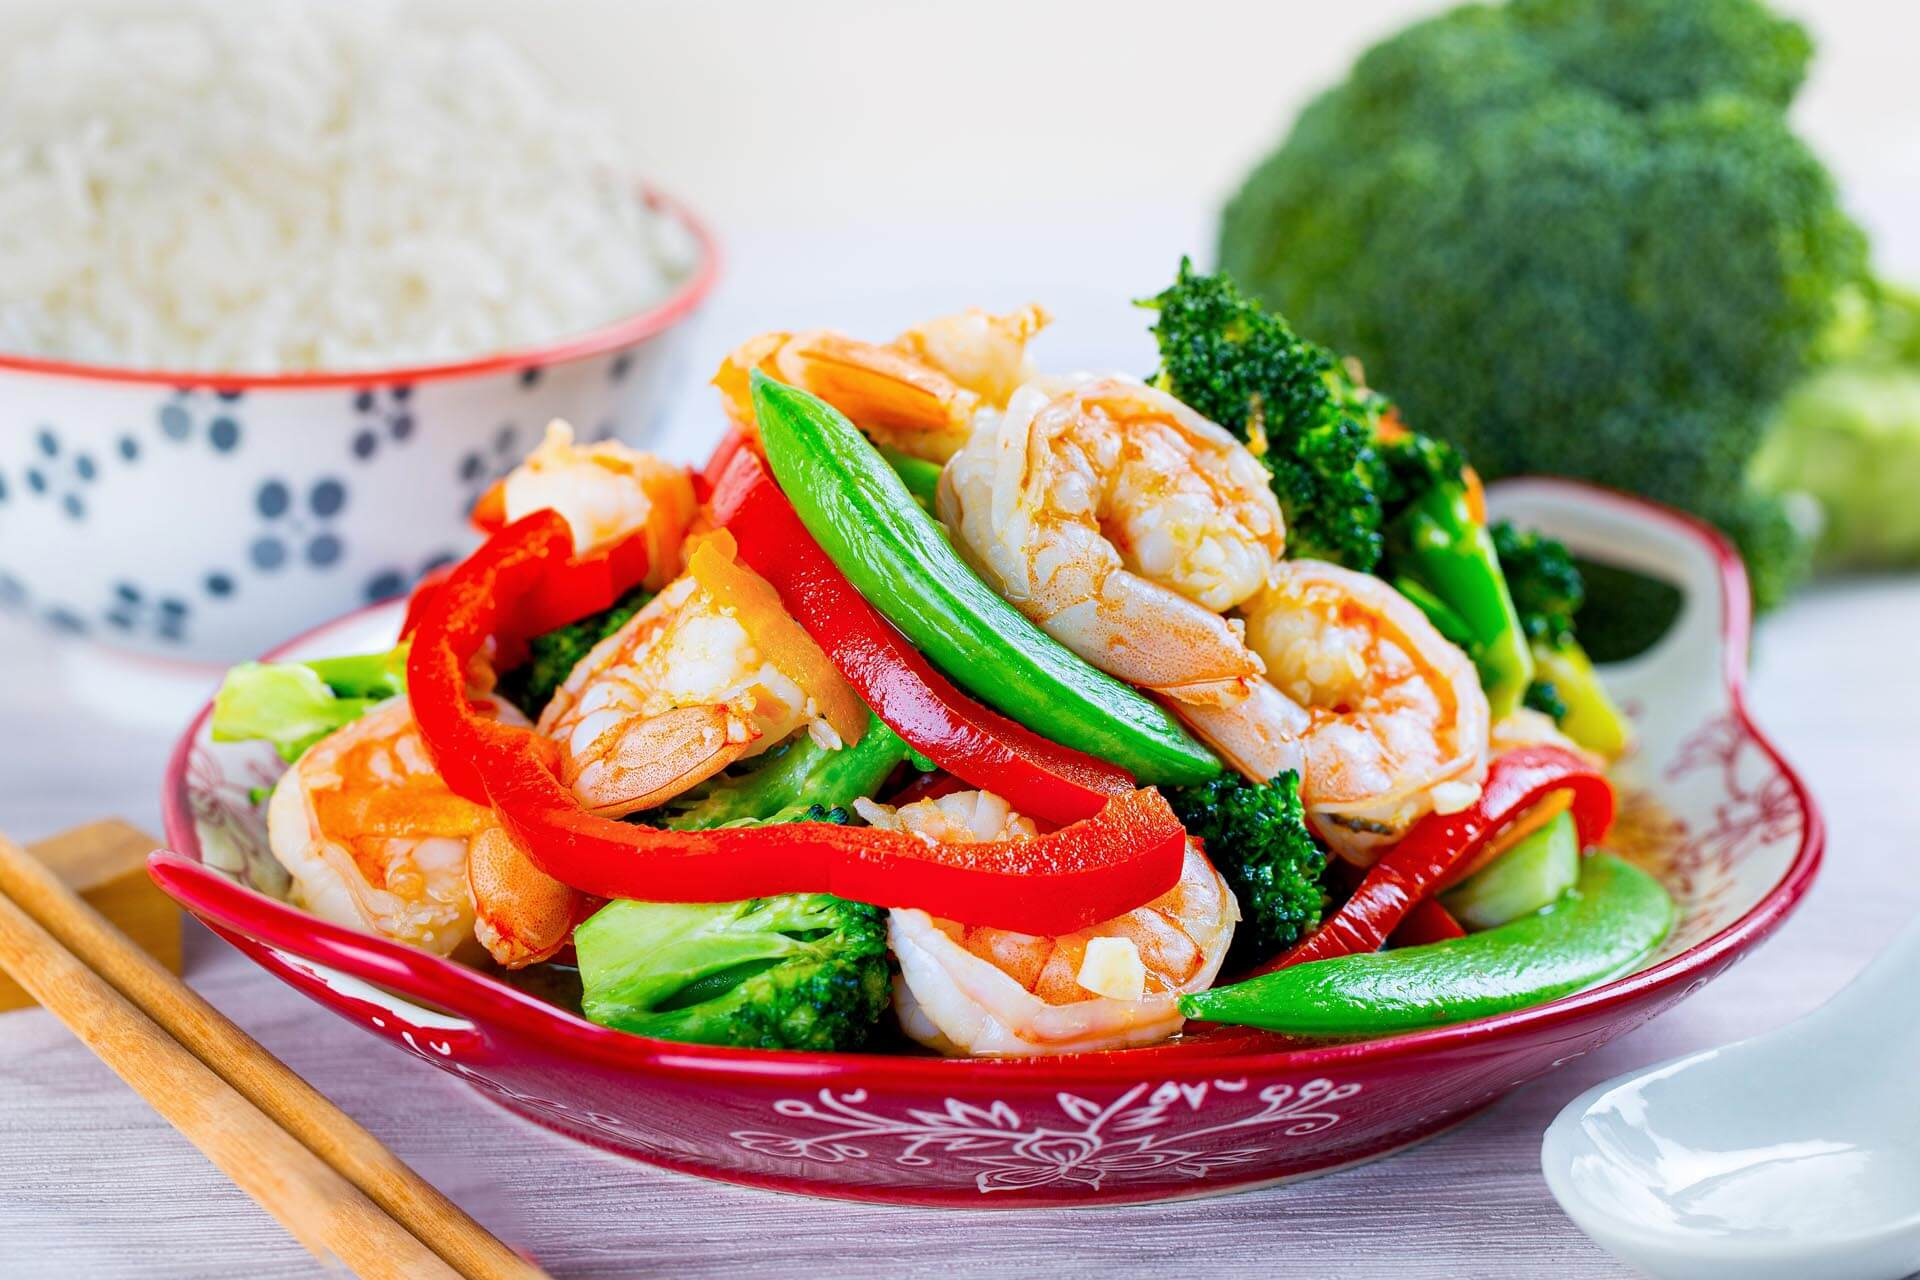 Prawns & Vegetable Stir Fry